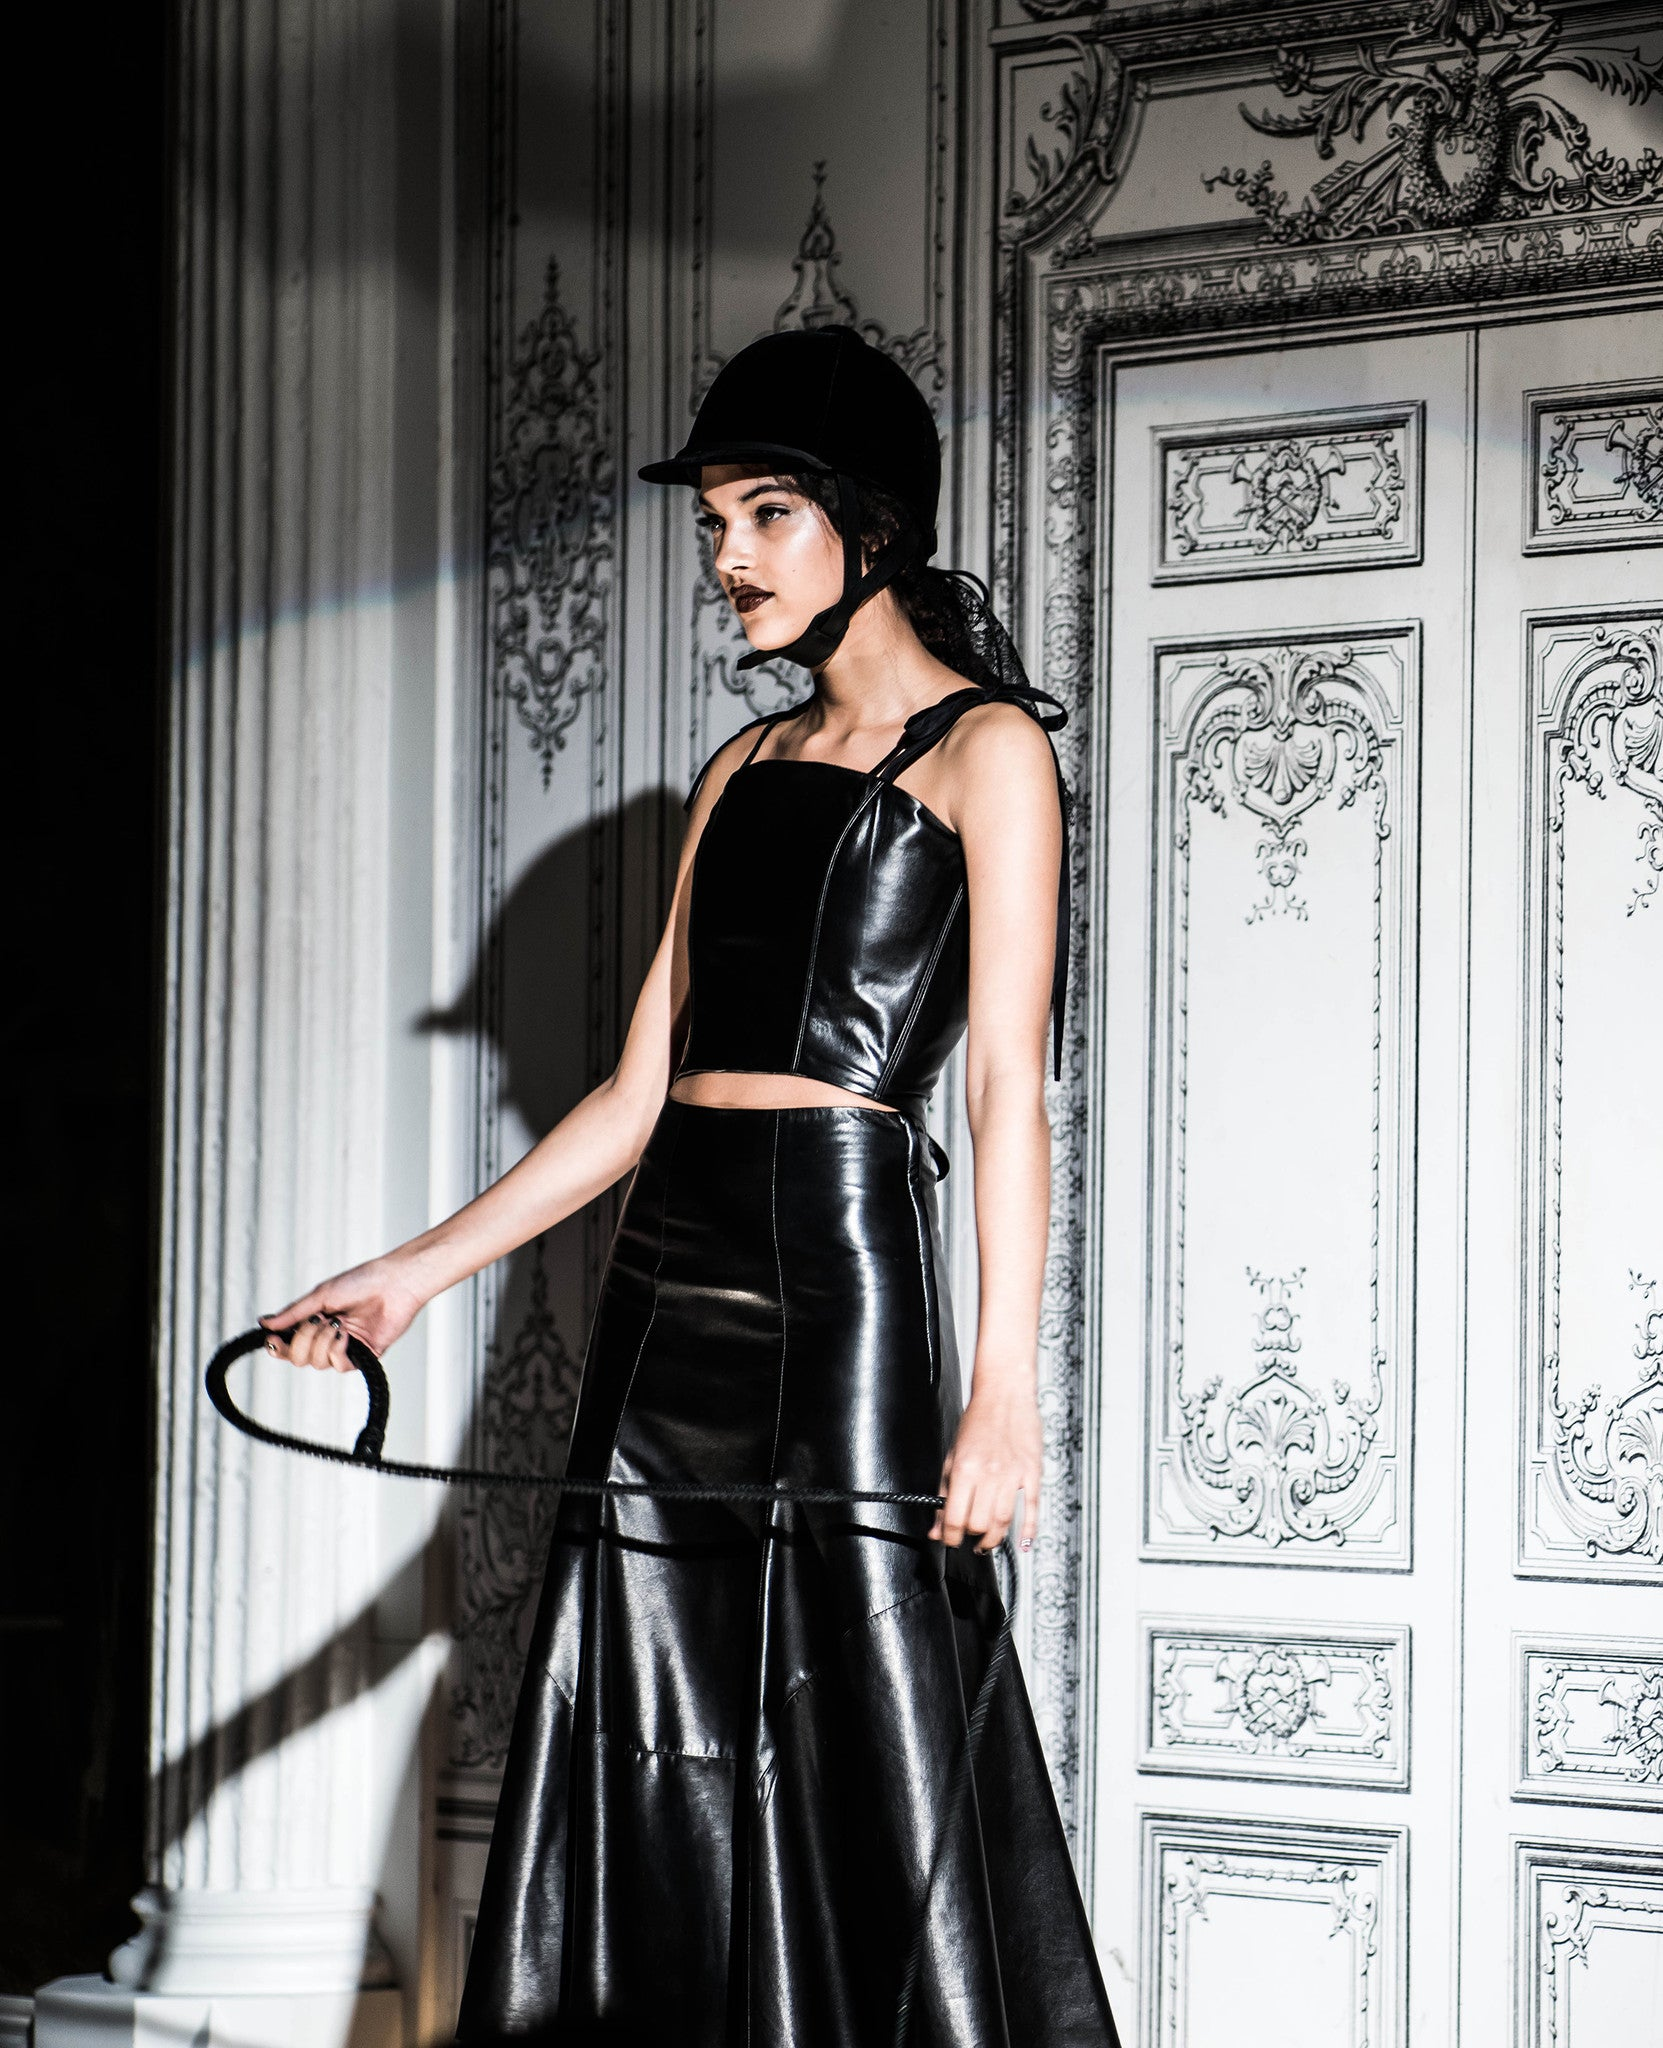 The Rebel Jung Leather Bustier Ribbon Bow Tie Shoulder Straps Lace up Tie back & Leather Skirt Whip Dominatrix Wendy Nichol Clothing Fashion Designer Handmade in NYC AW14 Ready to Wear Fashion Runway Show Custom Tailoring Made to Measure Made to Order Bespoke